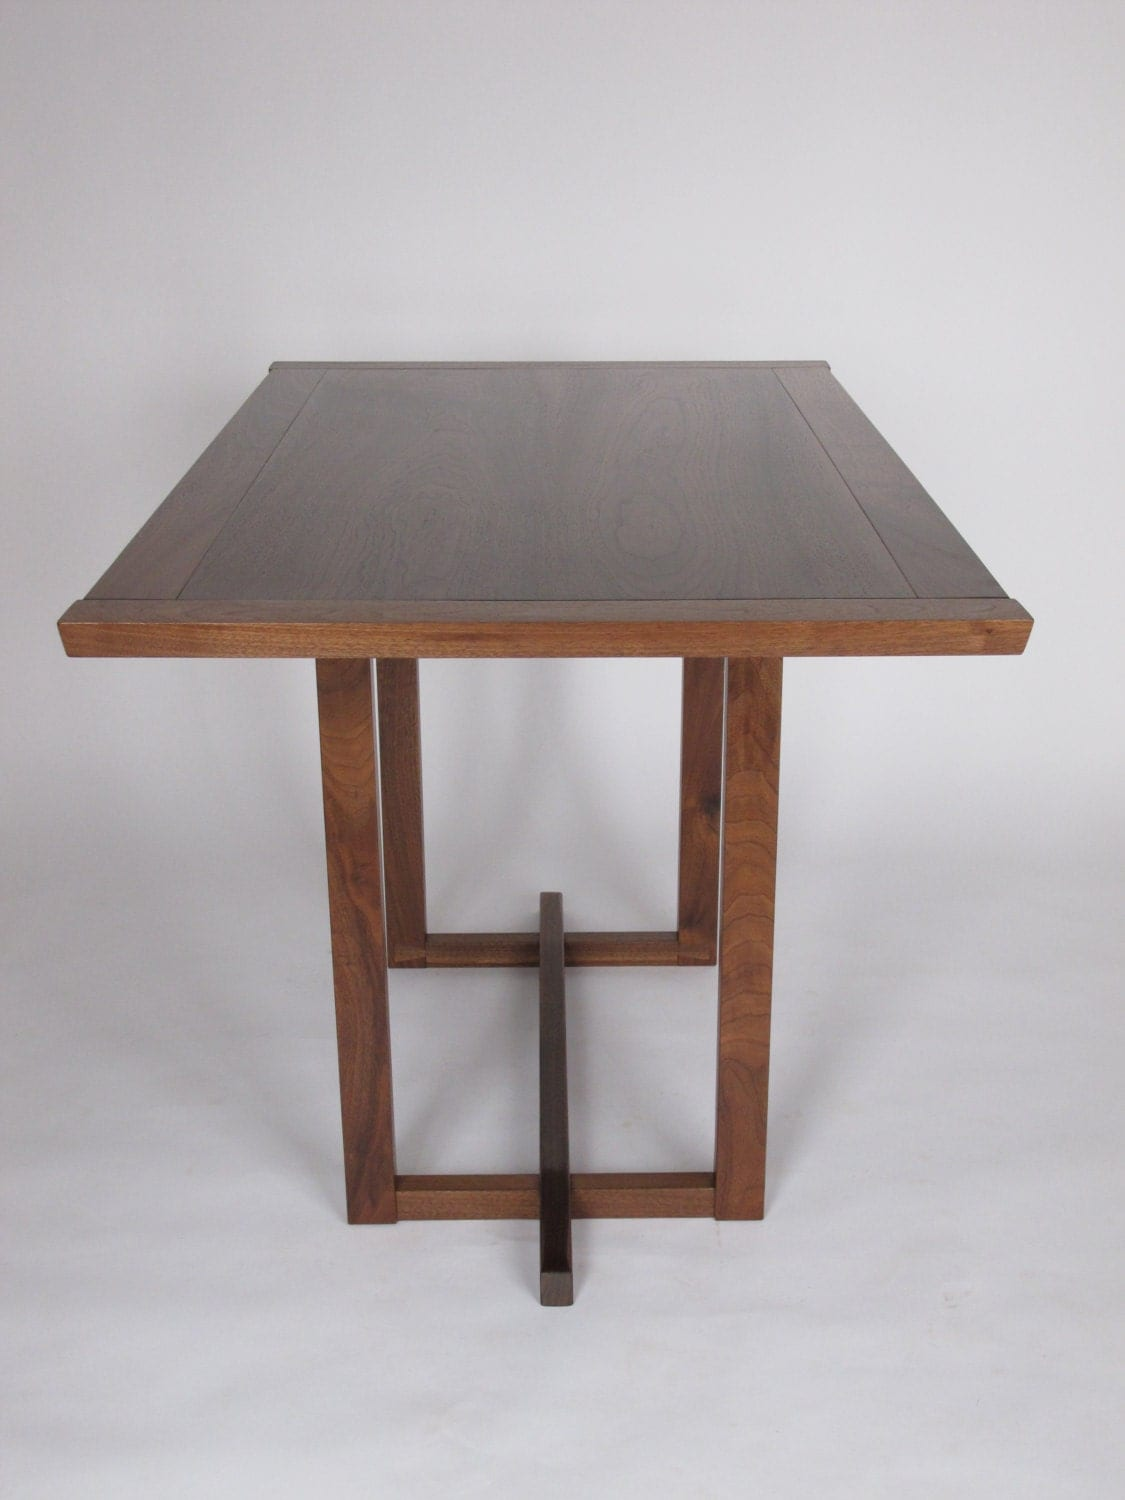 Narrow Pedestal : Narrow Dining Table: for a small dining room pedestal table